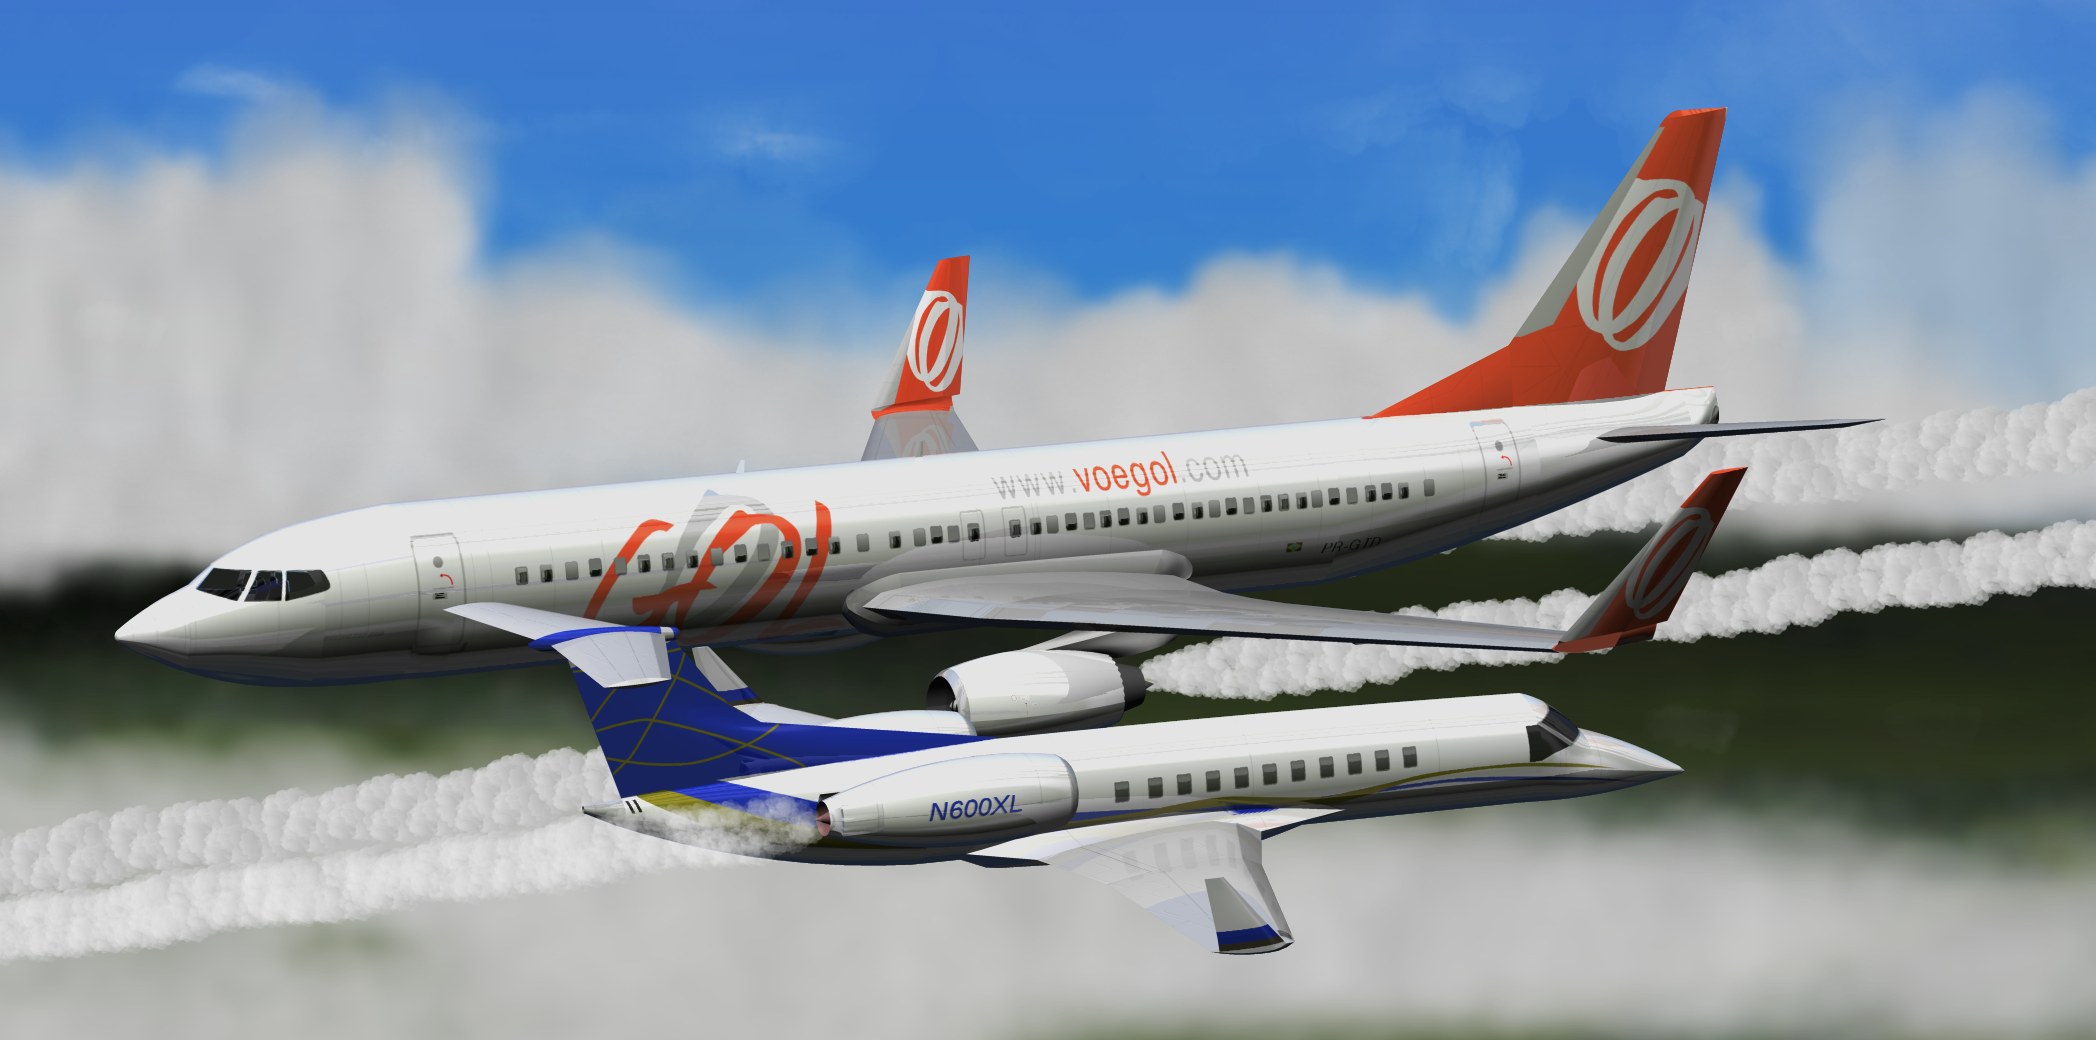 A Computer Generated Rendering Of Two Aircraft Flying In Opposite Directions Slightly Offset From